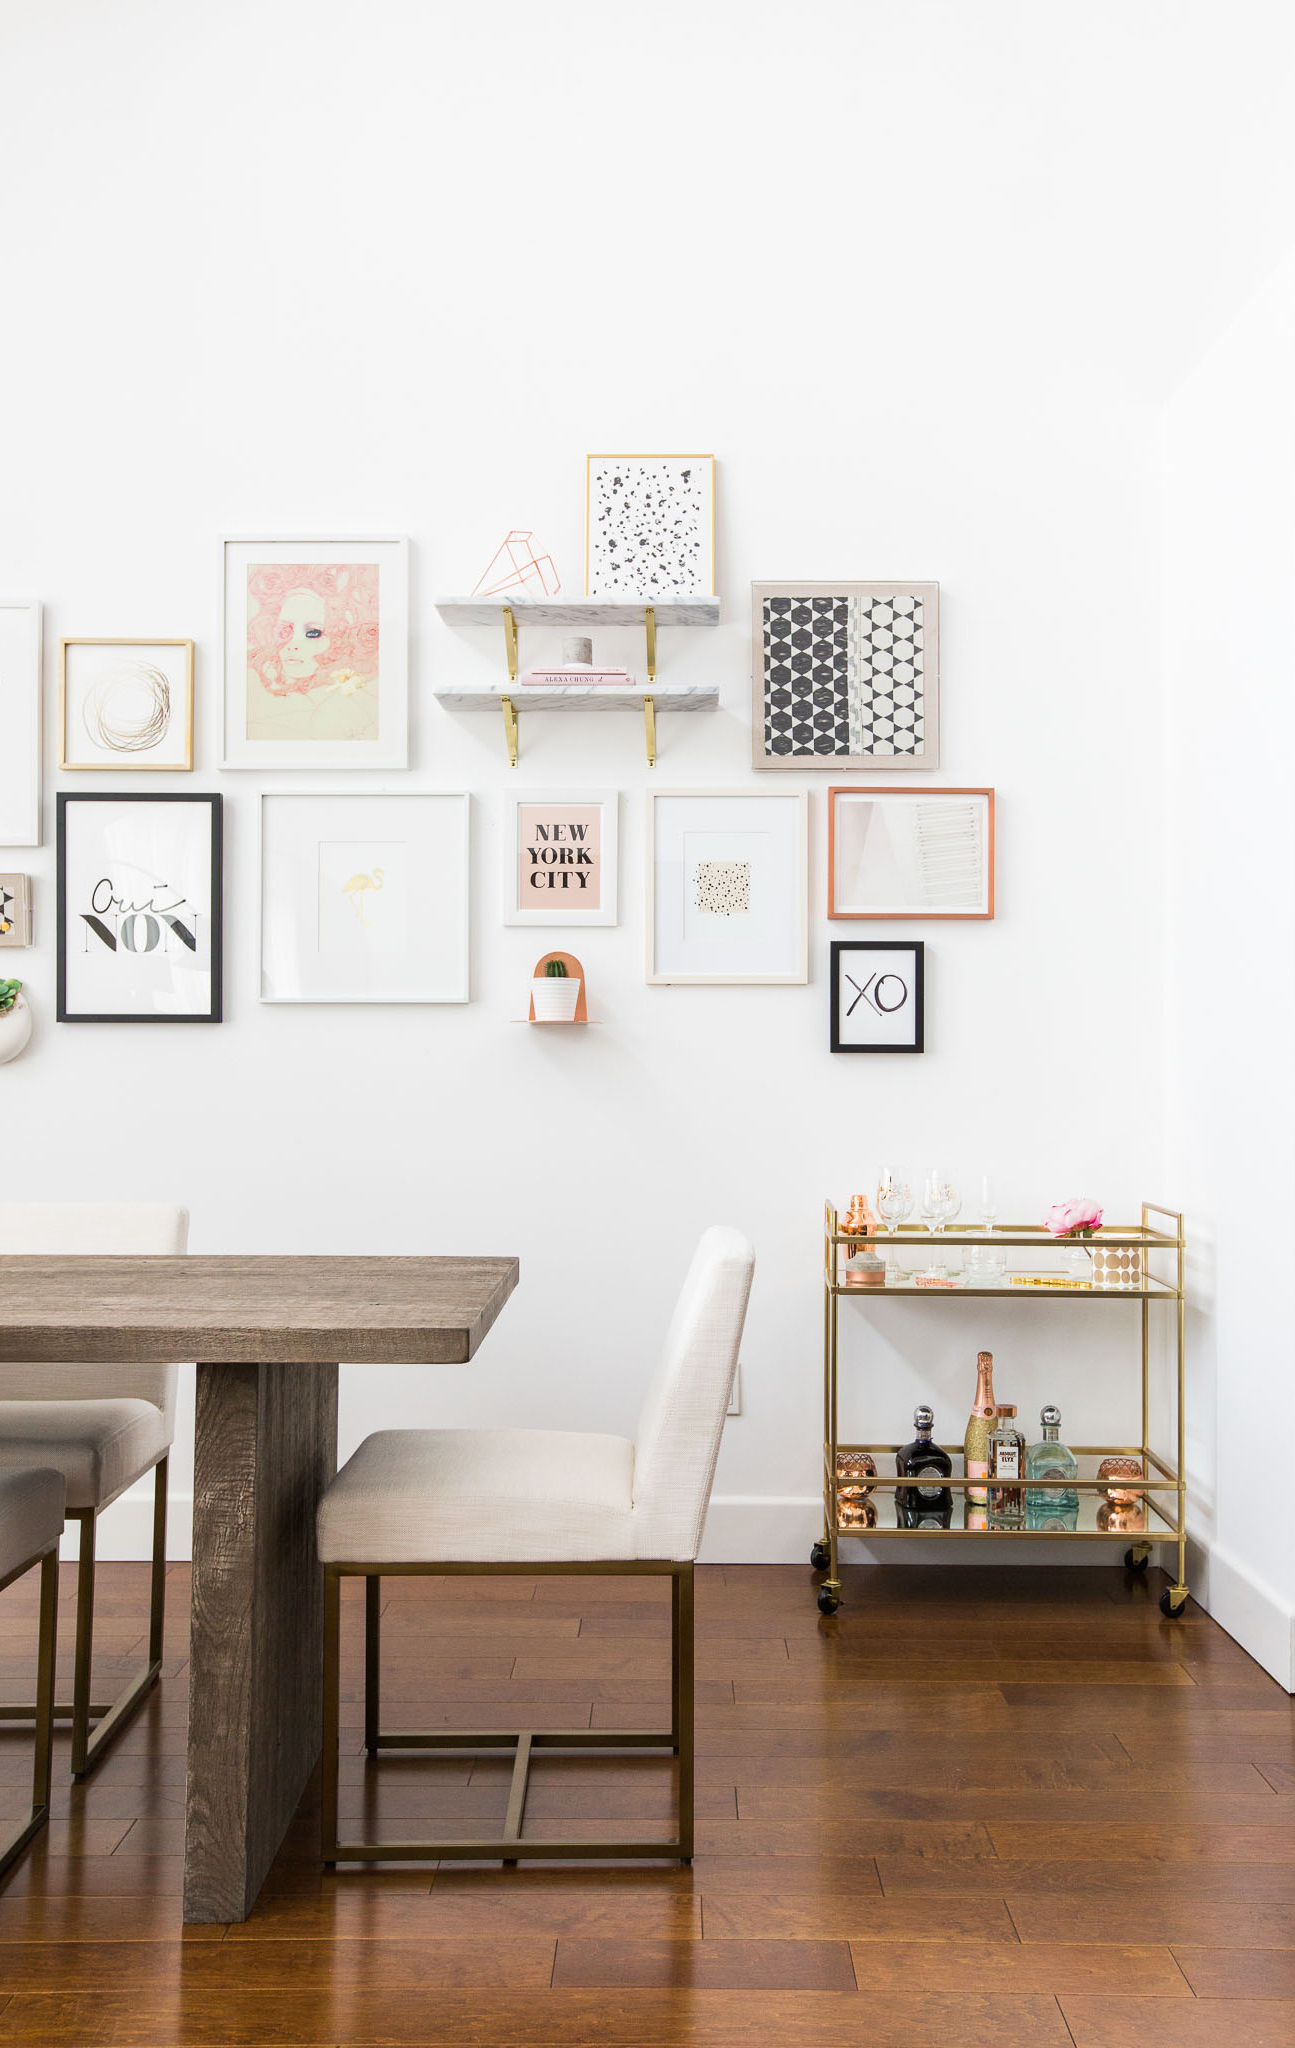 Marianna Hewitt's dining room with barcart and gallery wall